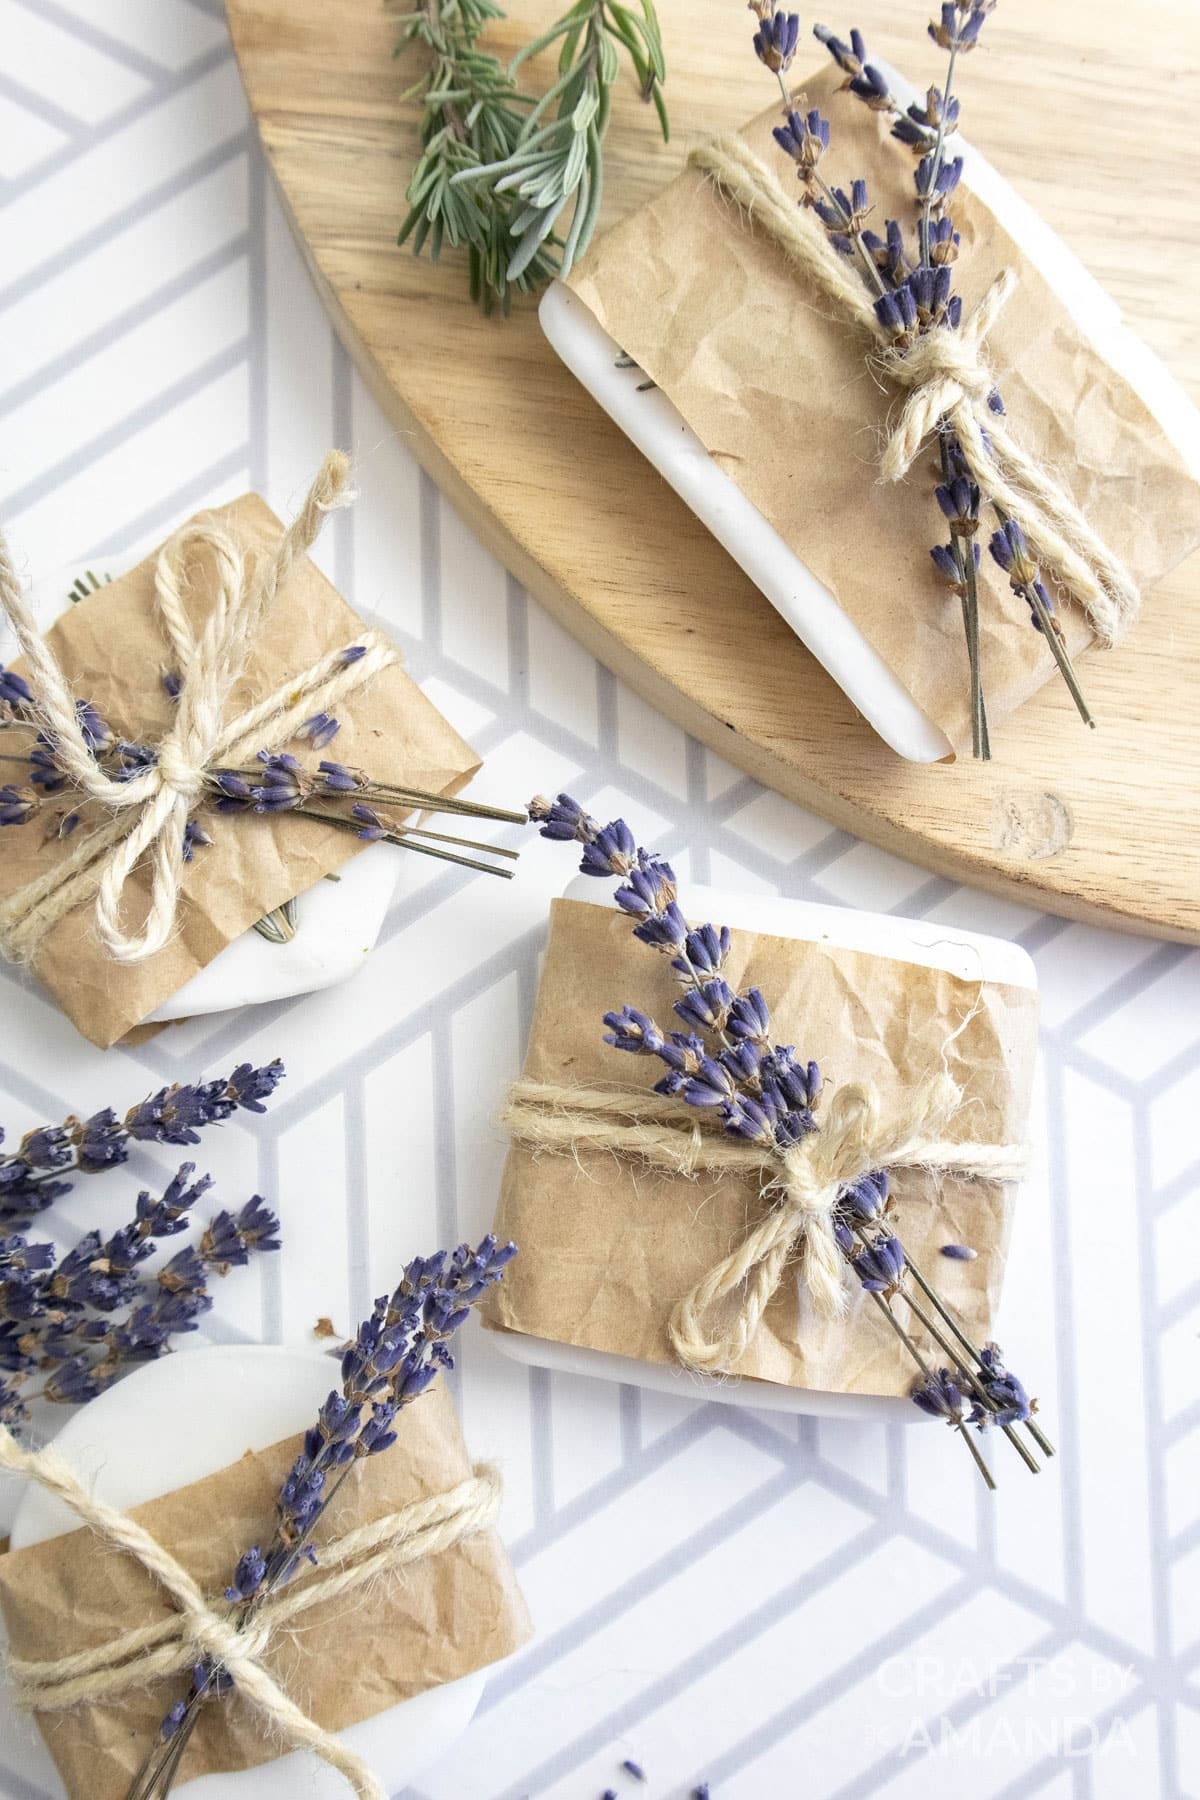 lavender soap wrapped in brown paper